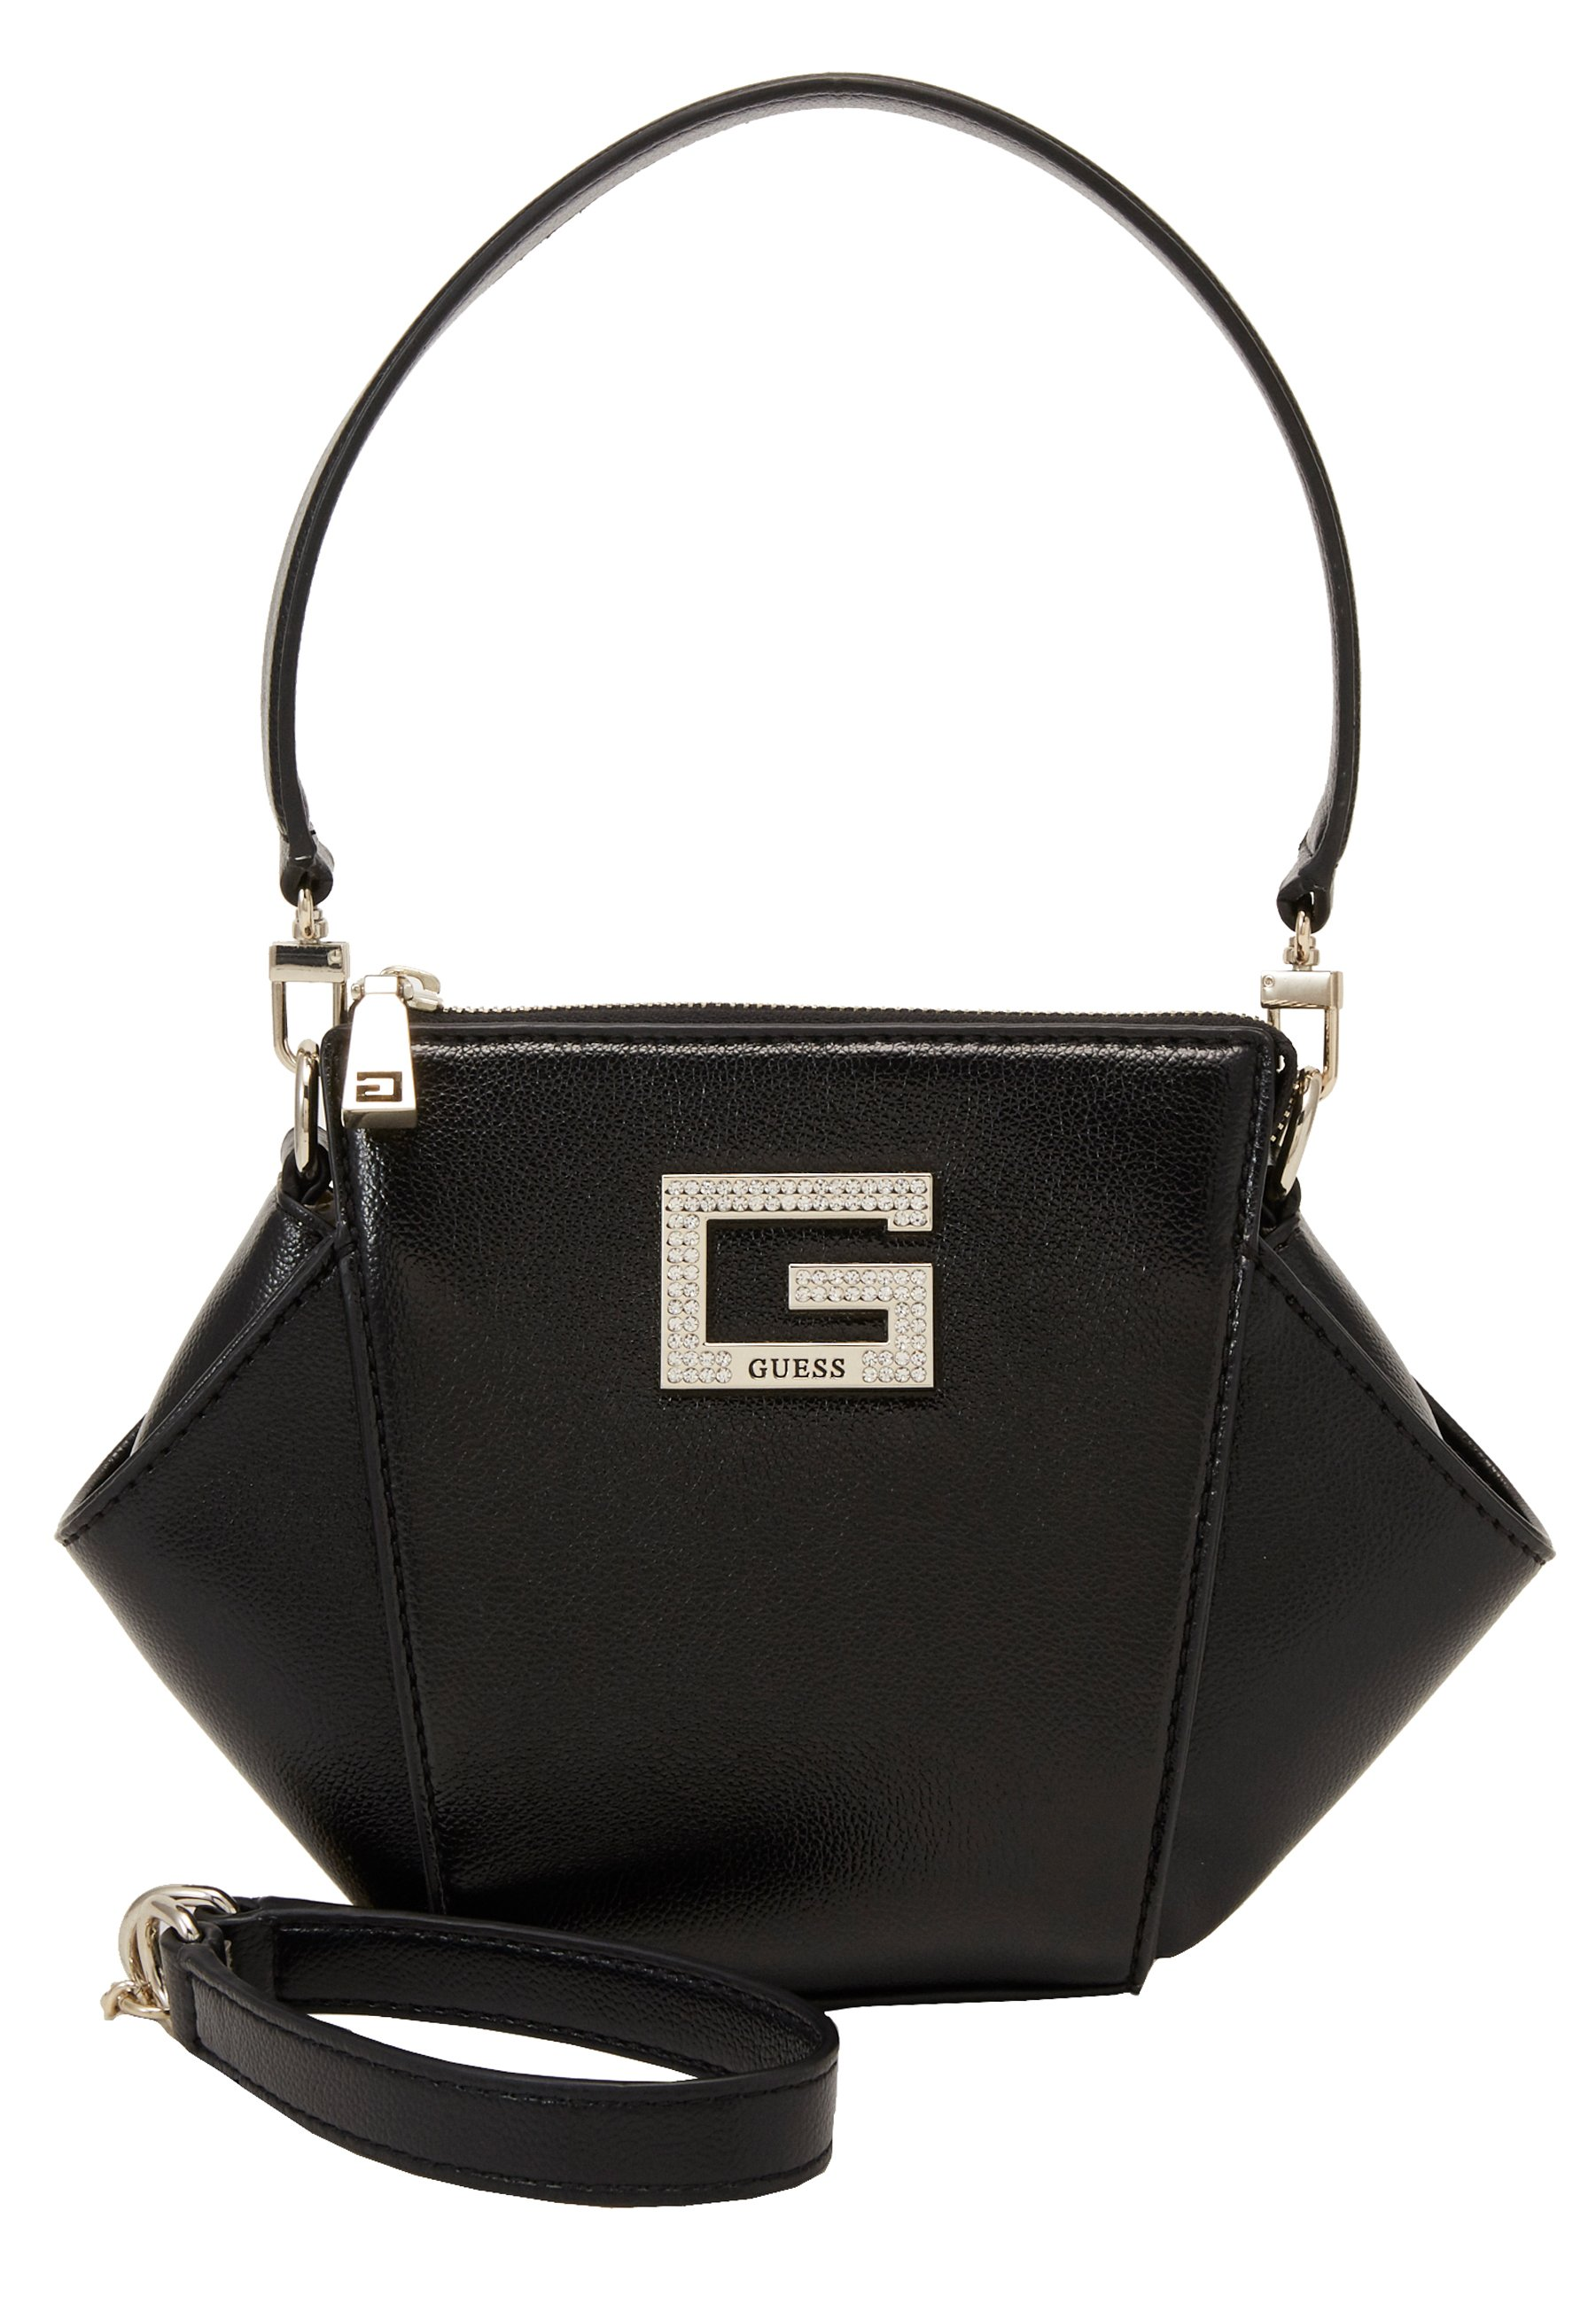 Guess DINNER DATE MINI SHOULDER BAG - Håndveske - black/svart 8MIHJh3bKxZr2Nh